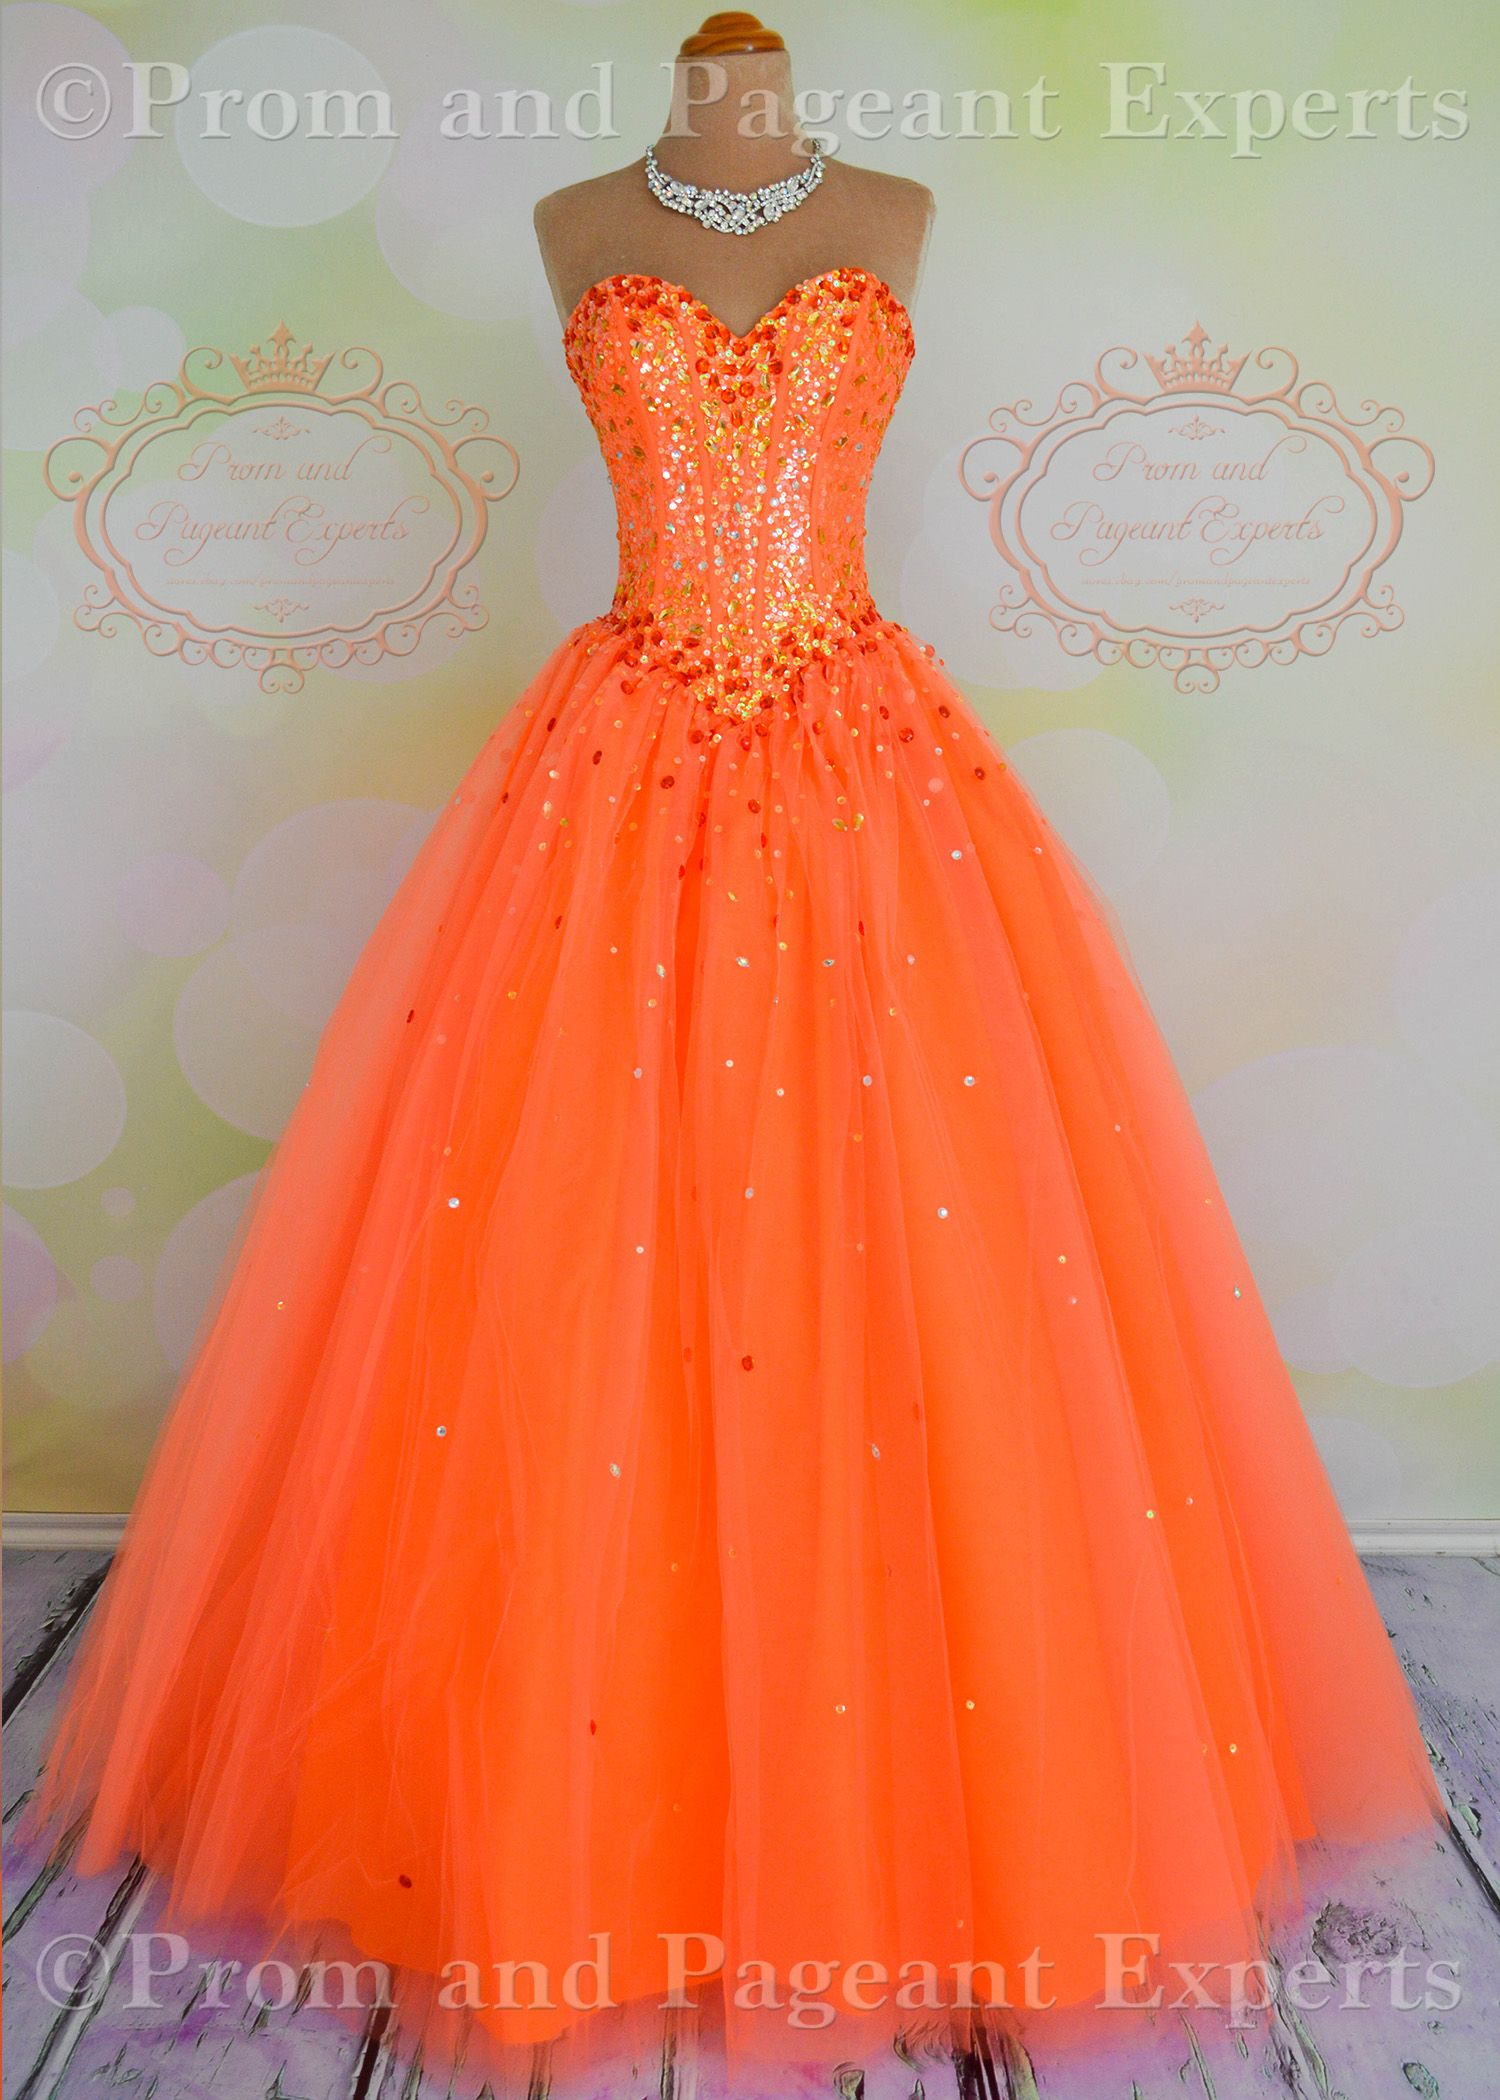 1c604abe09 Mori Lee Neon Orange Prom Ball Gown Dress Quince Laceup Corset Back AMAZING  PRICE!